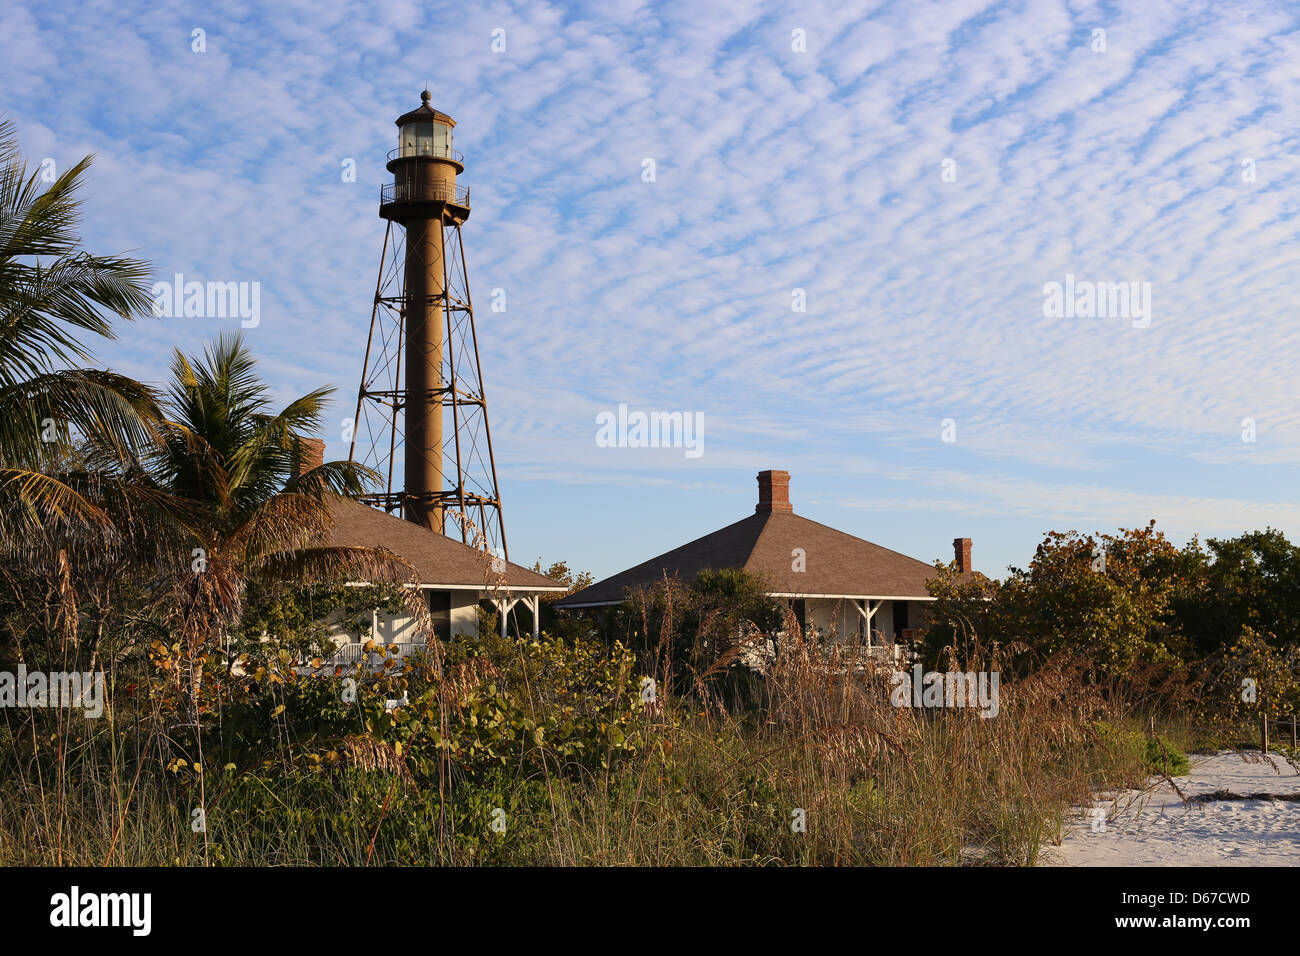 Good The Sanibel Island Light Or Point Ybel Light Is The First Lighthouse On  Floridau0027s Gulf Coast North Of Key West Design Inspirations